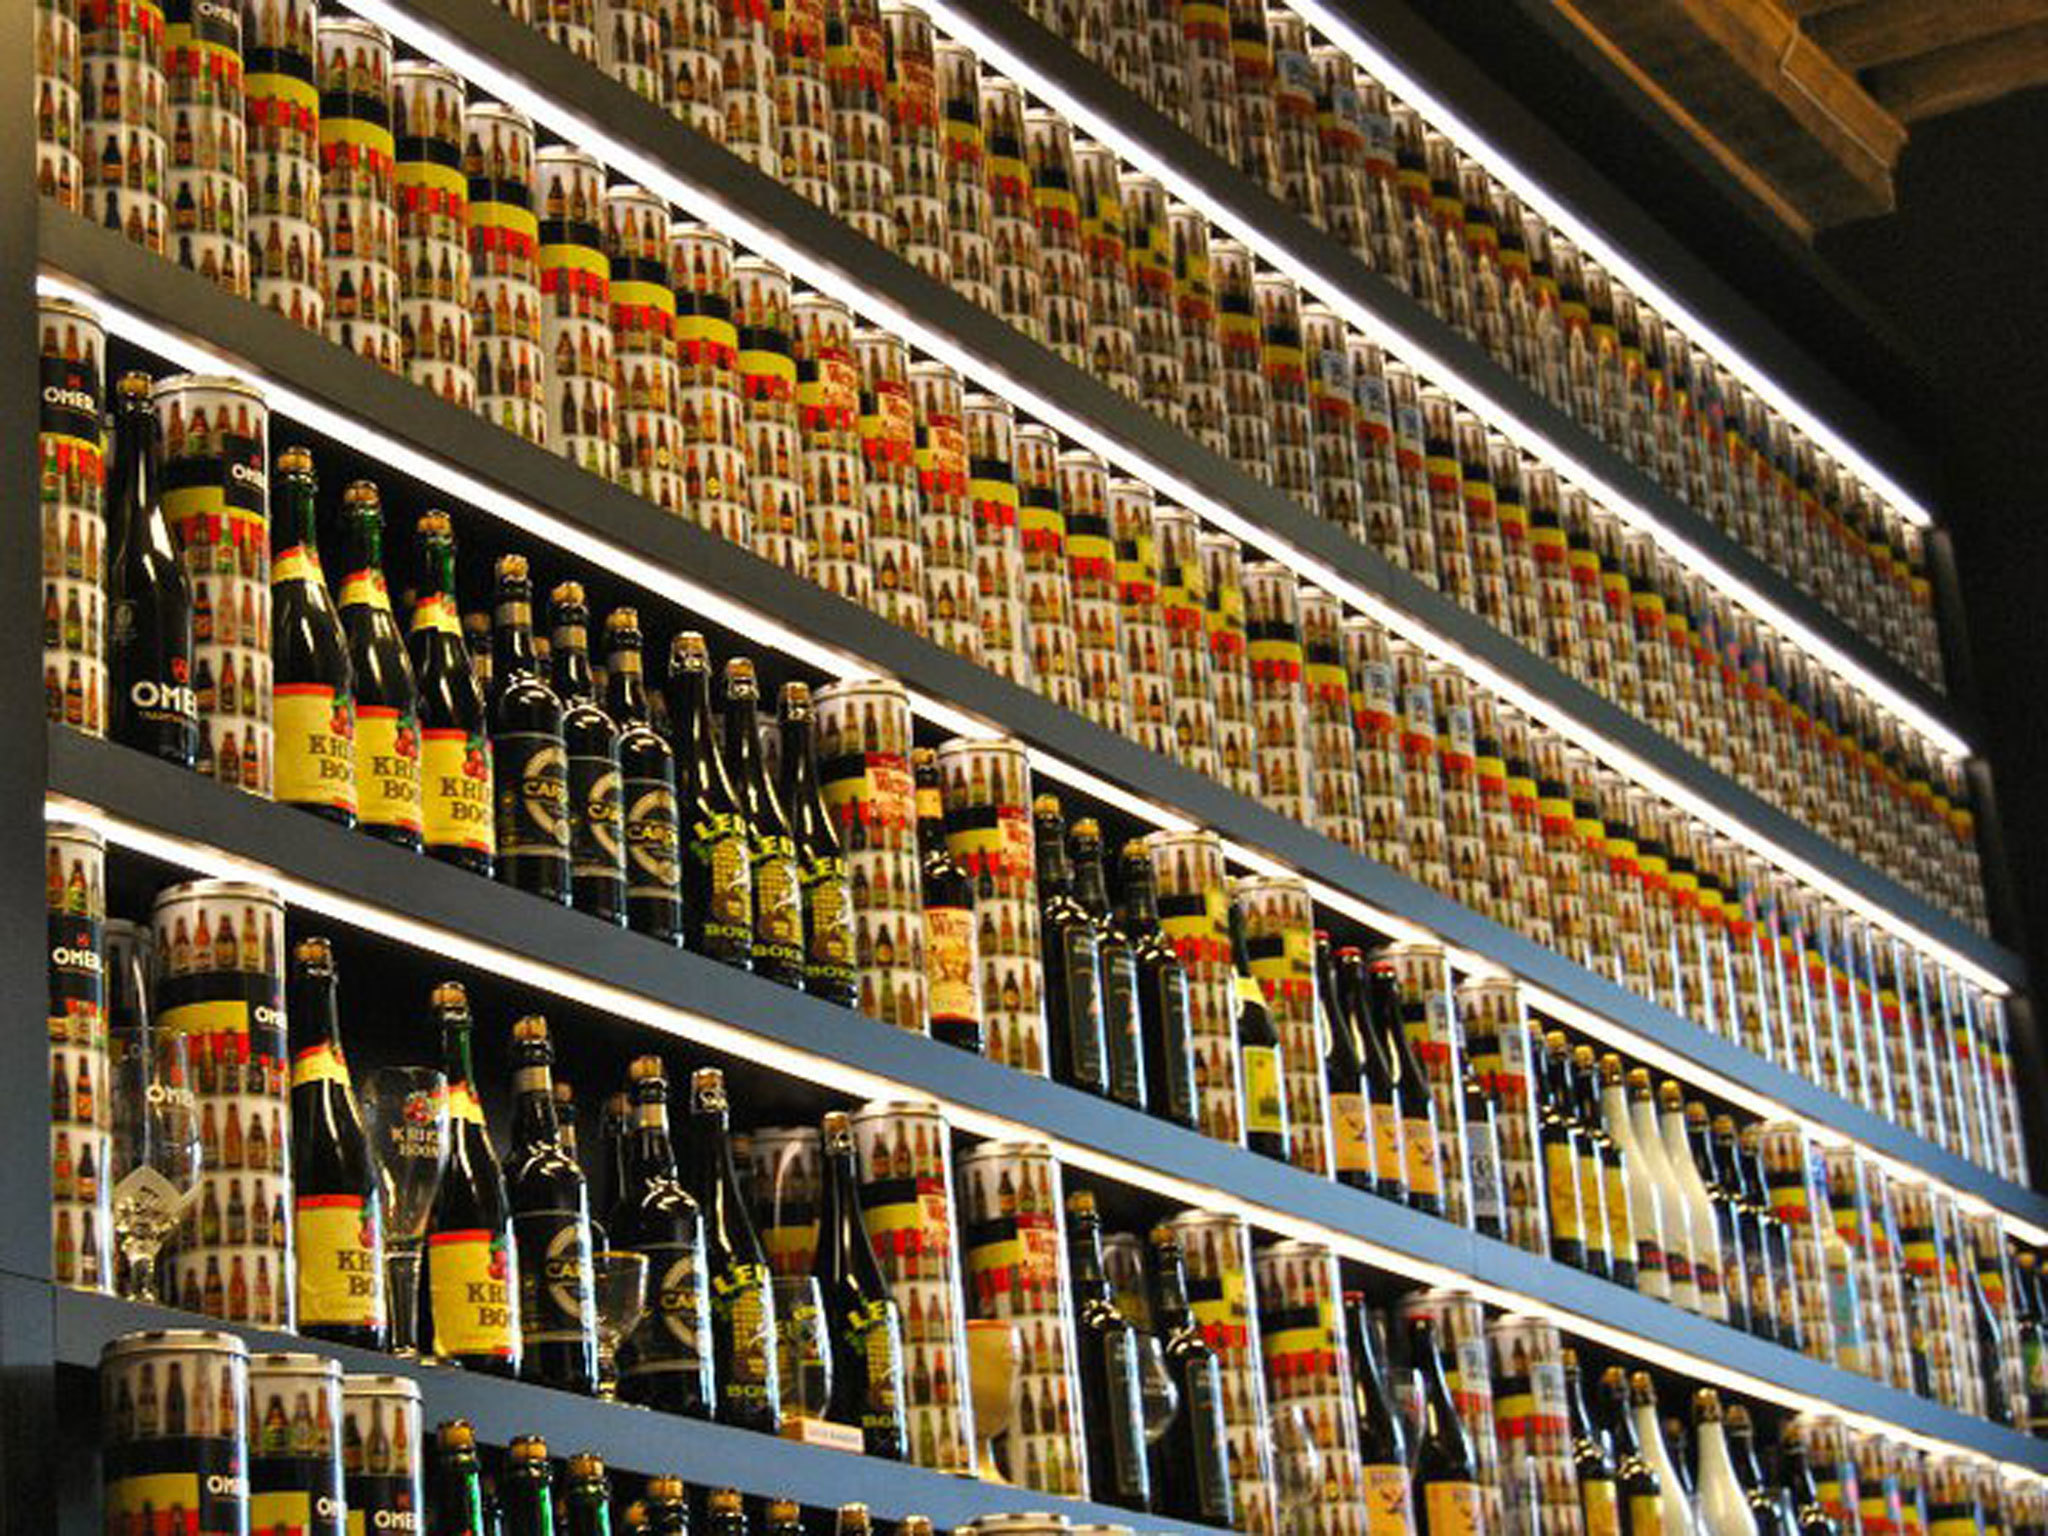 2be Beer Wall - Bruges - Belgium